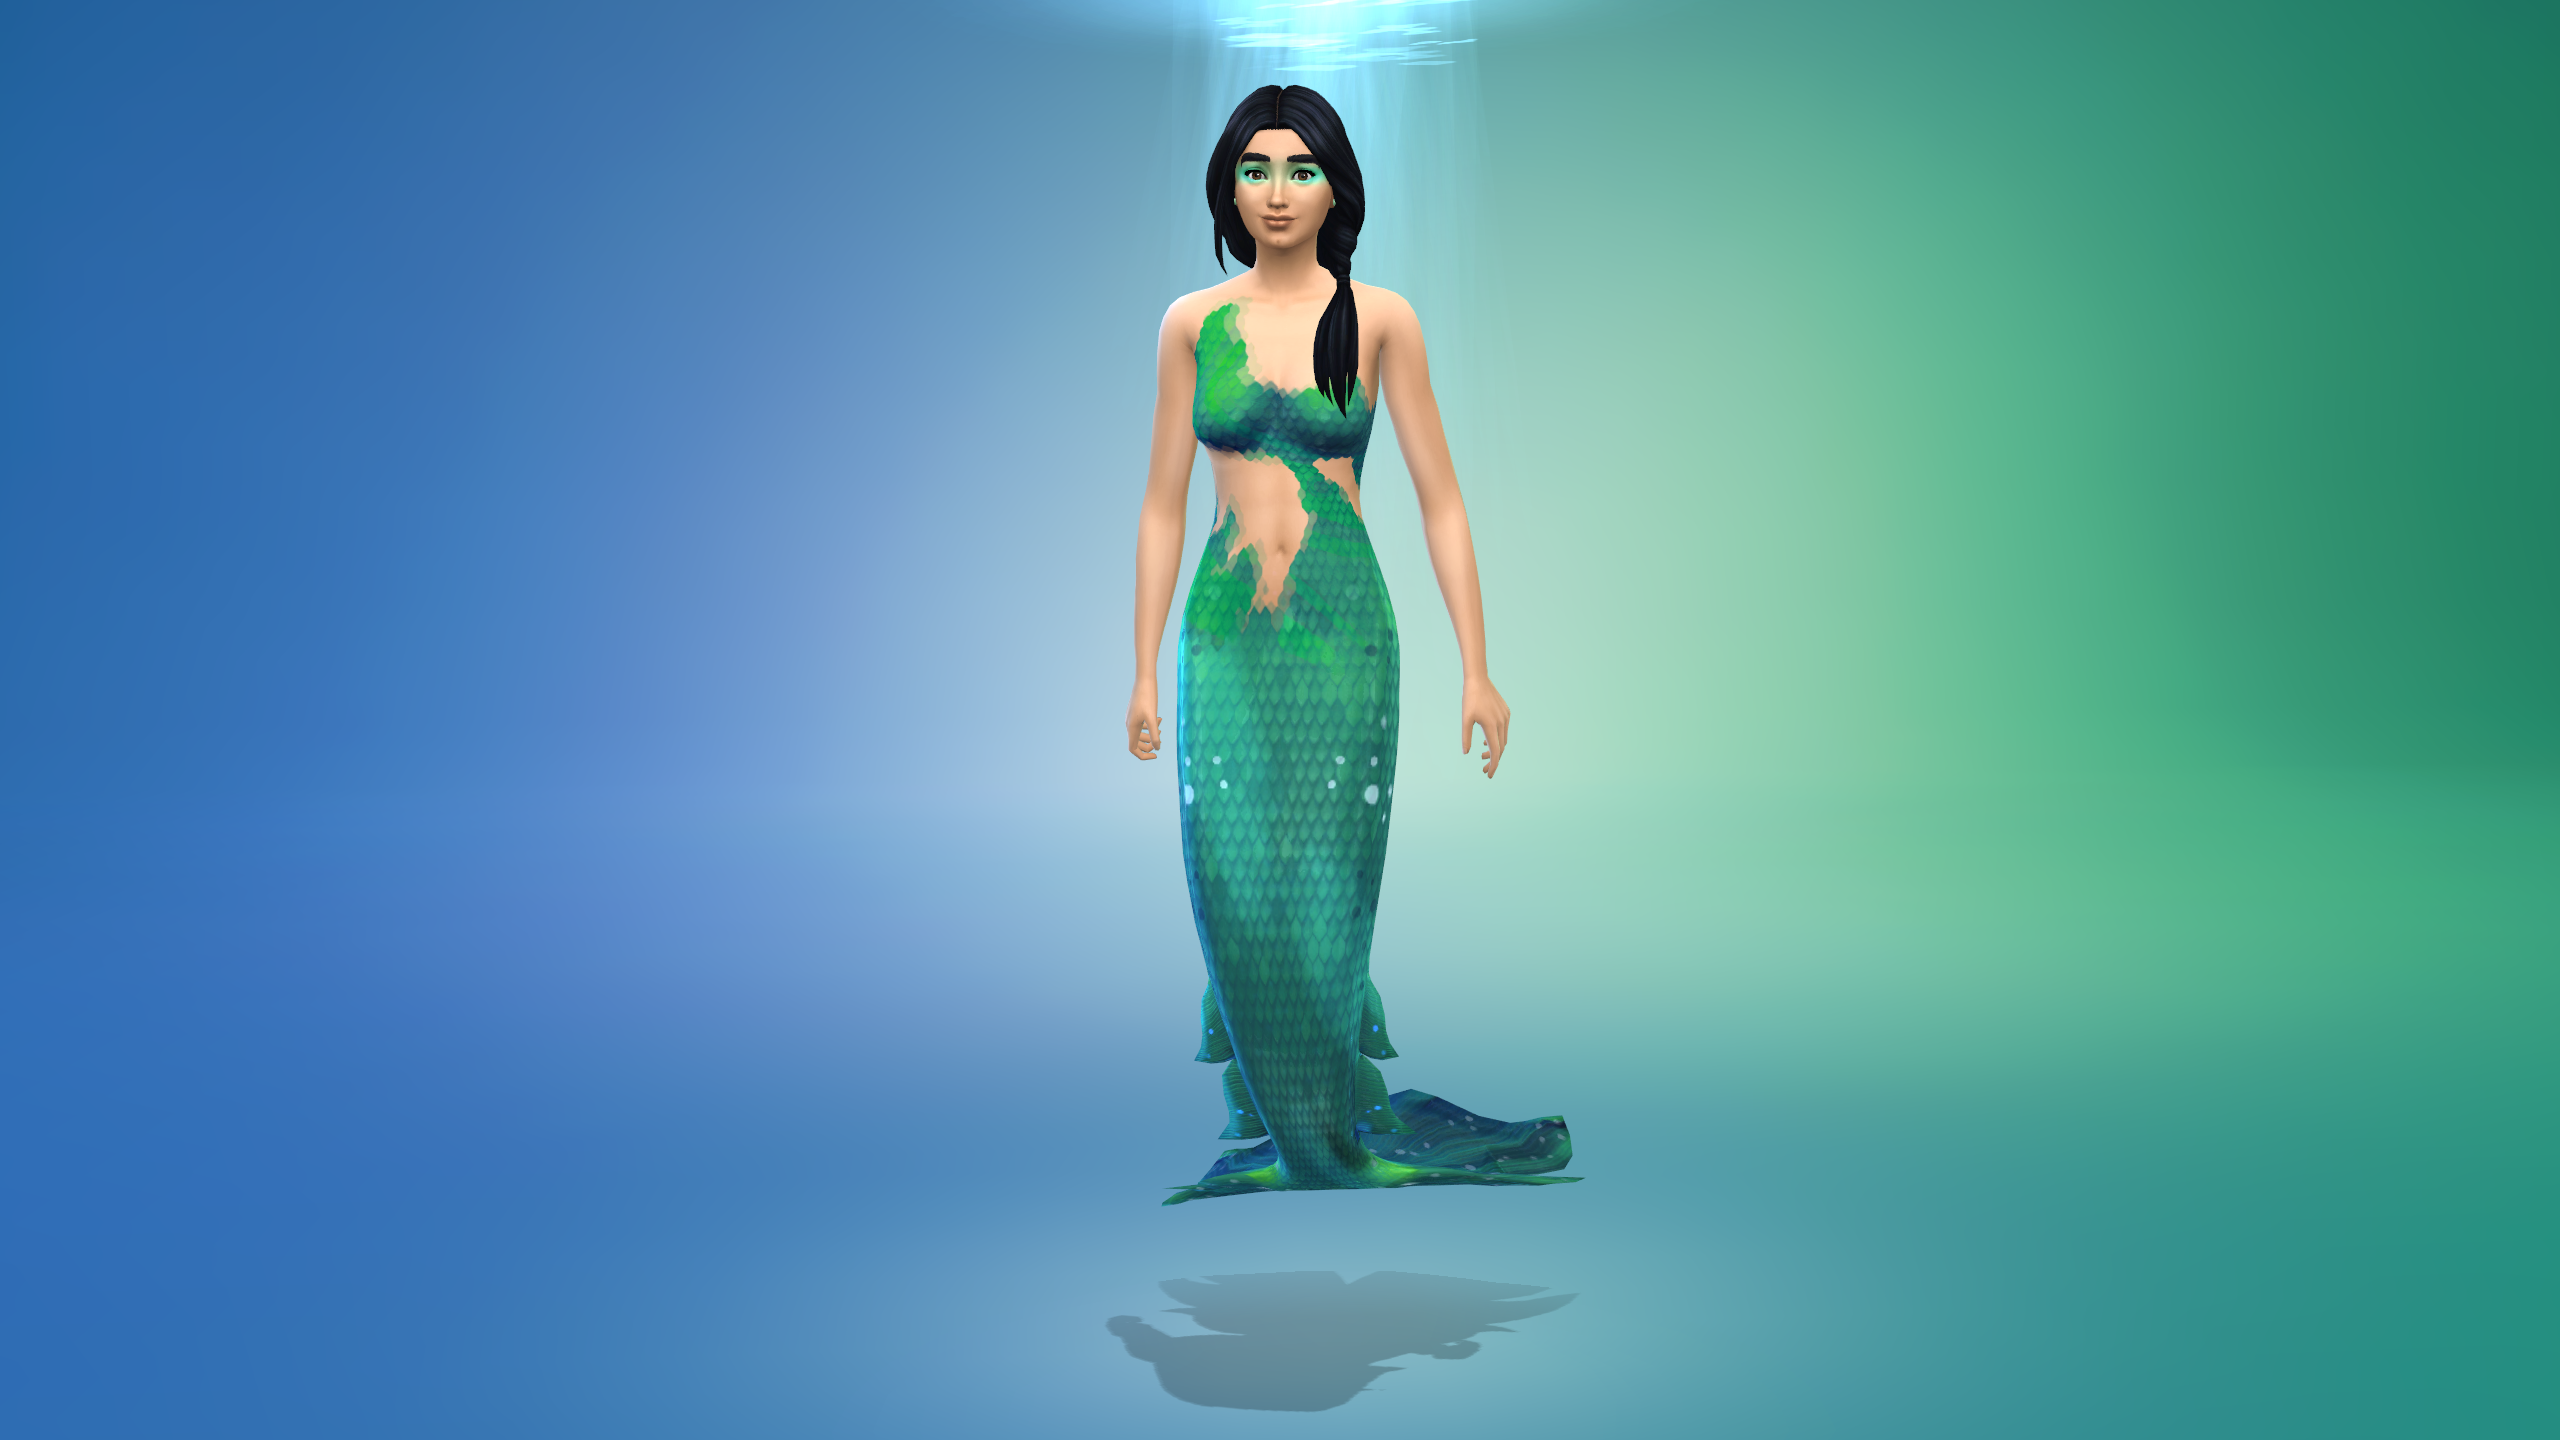 MOD/CC RELATED] Several Issues with Mermaid – Crinric'ts